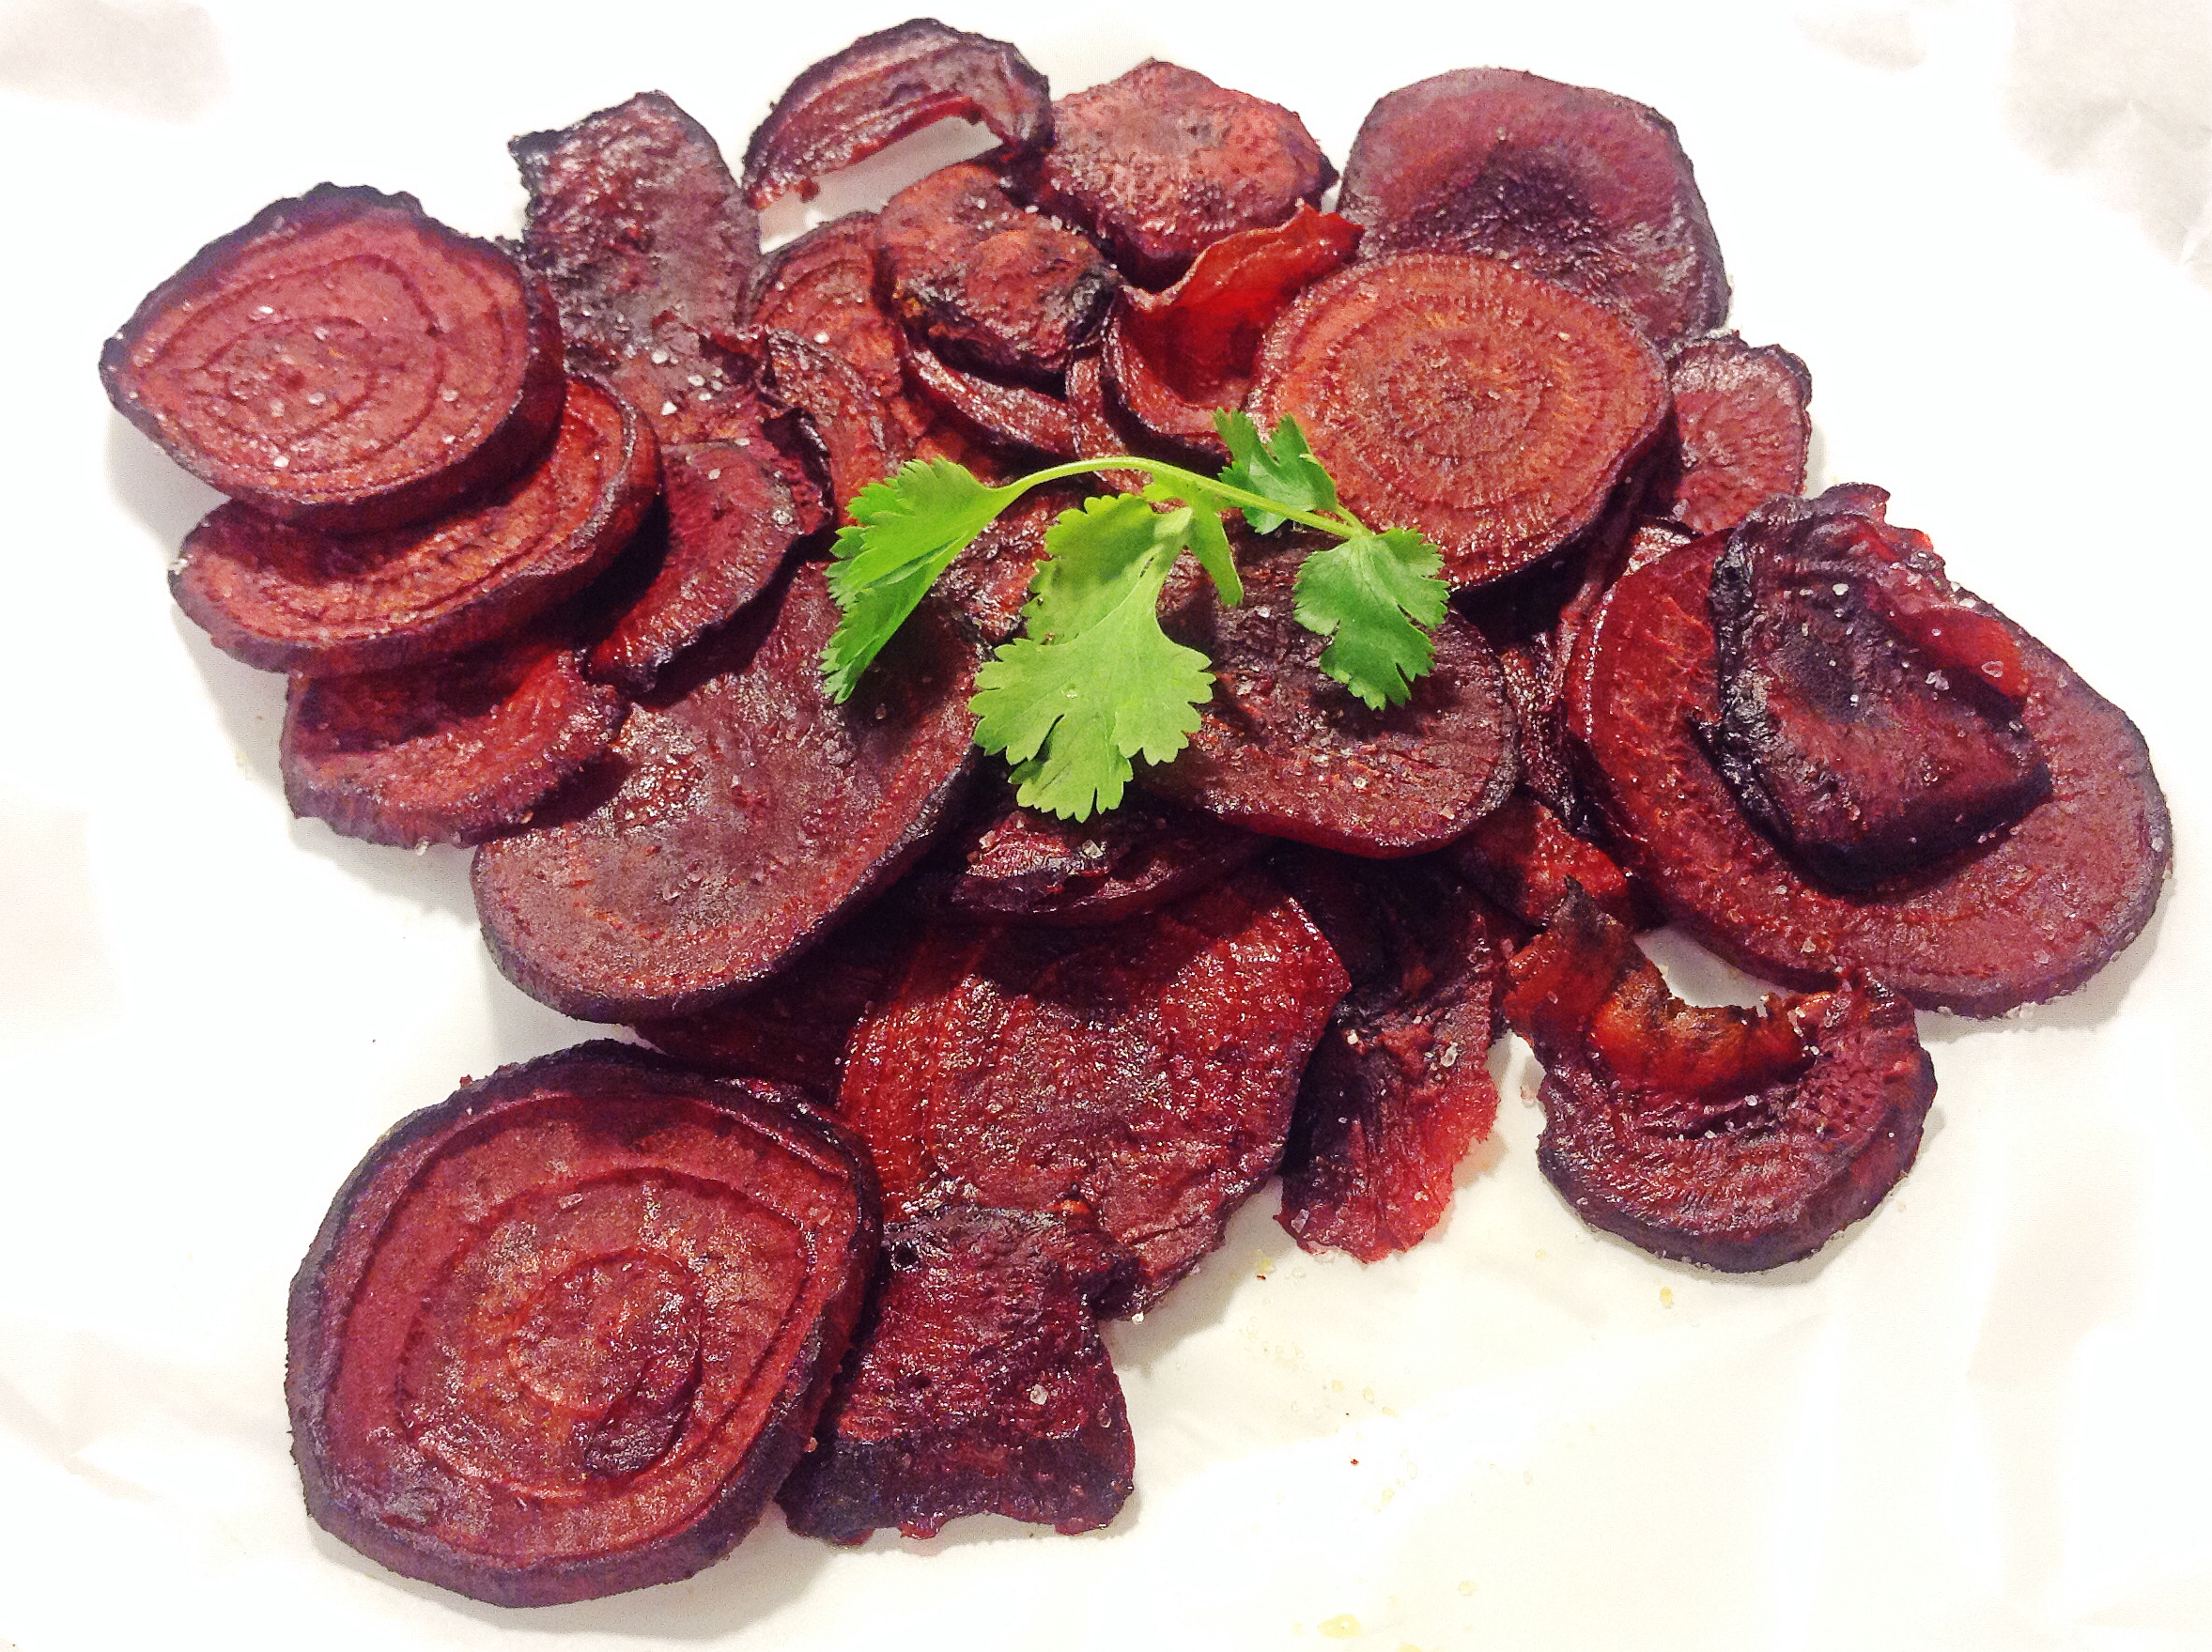 Healthy Snacks: Southwestern Beet Chips